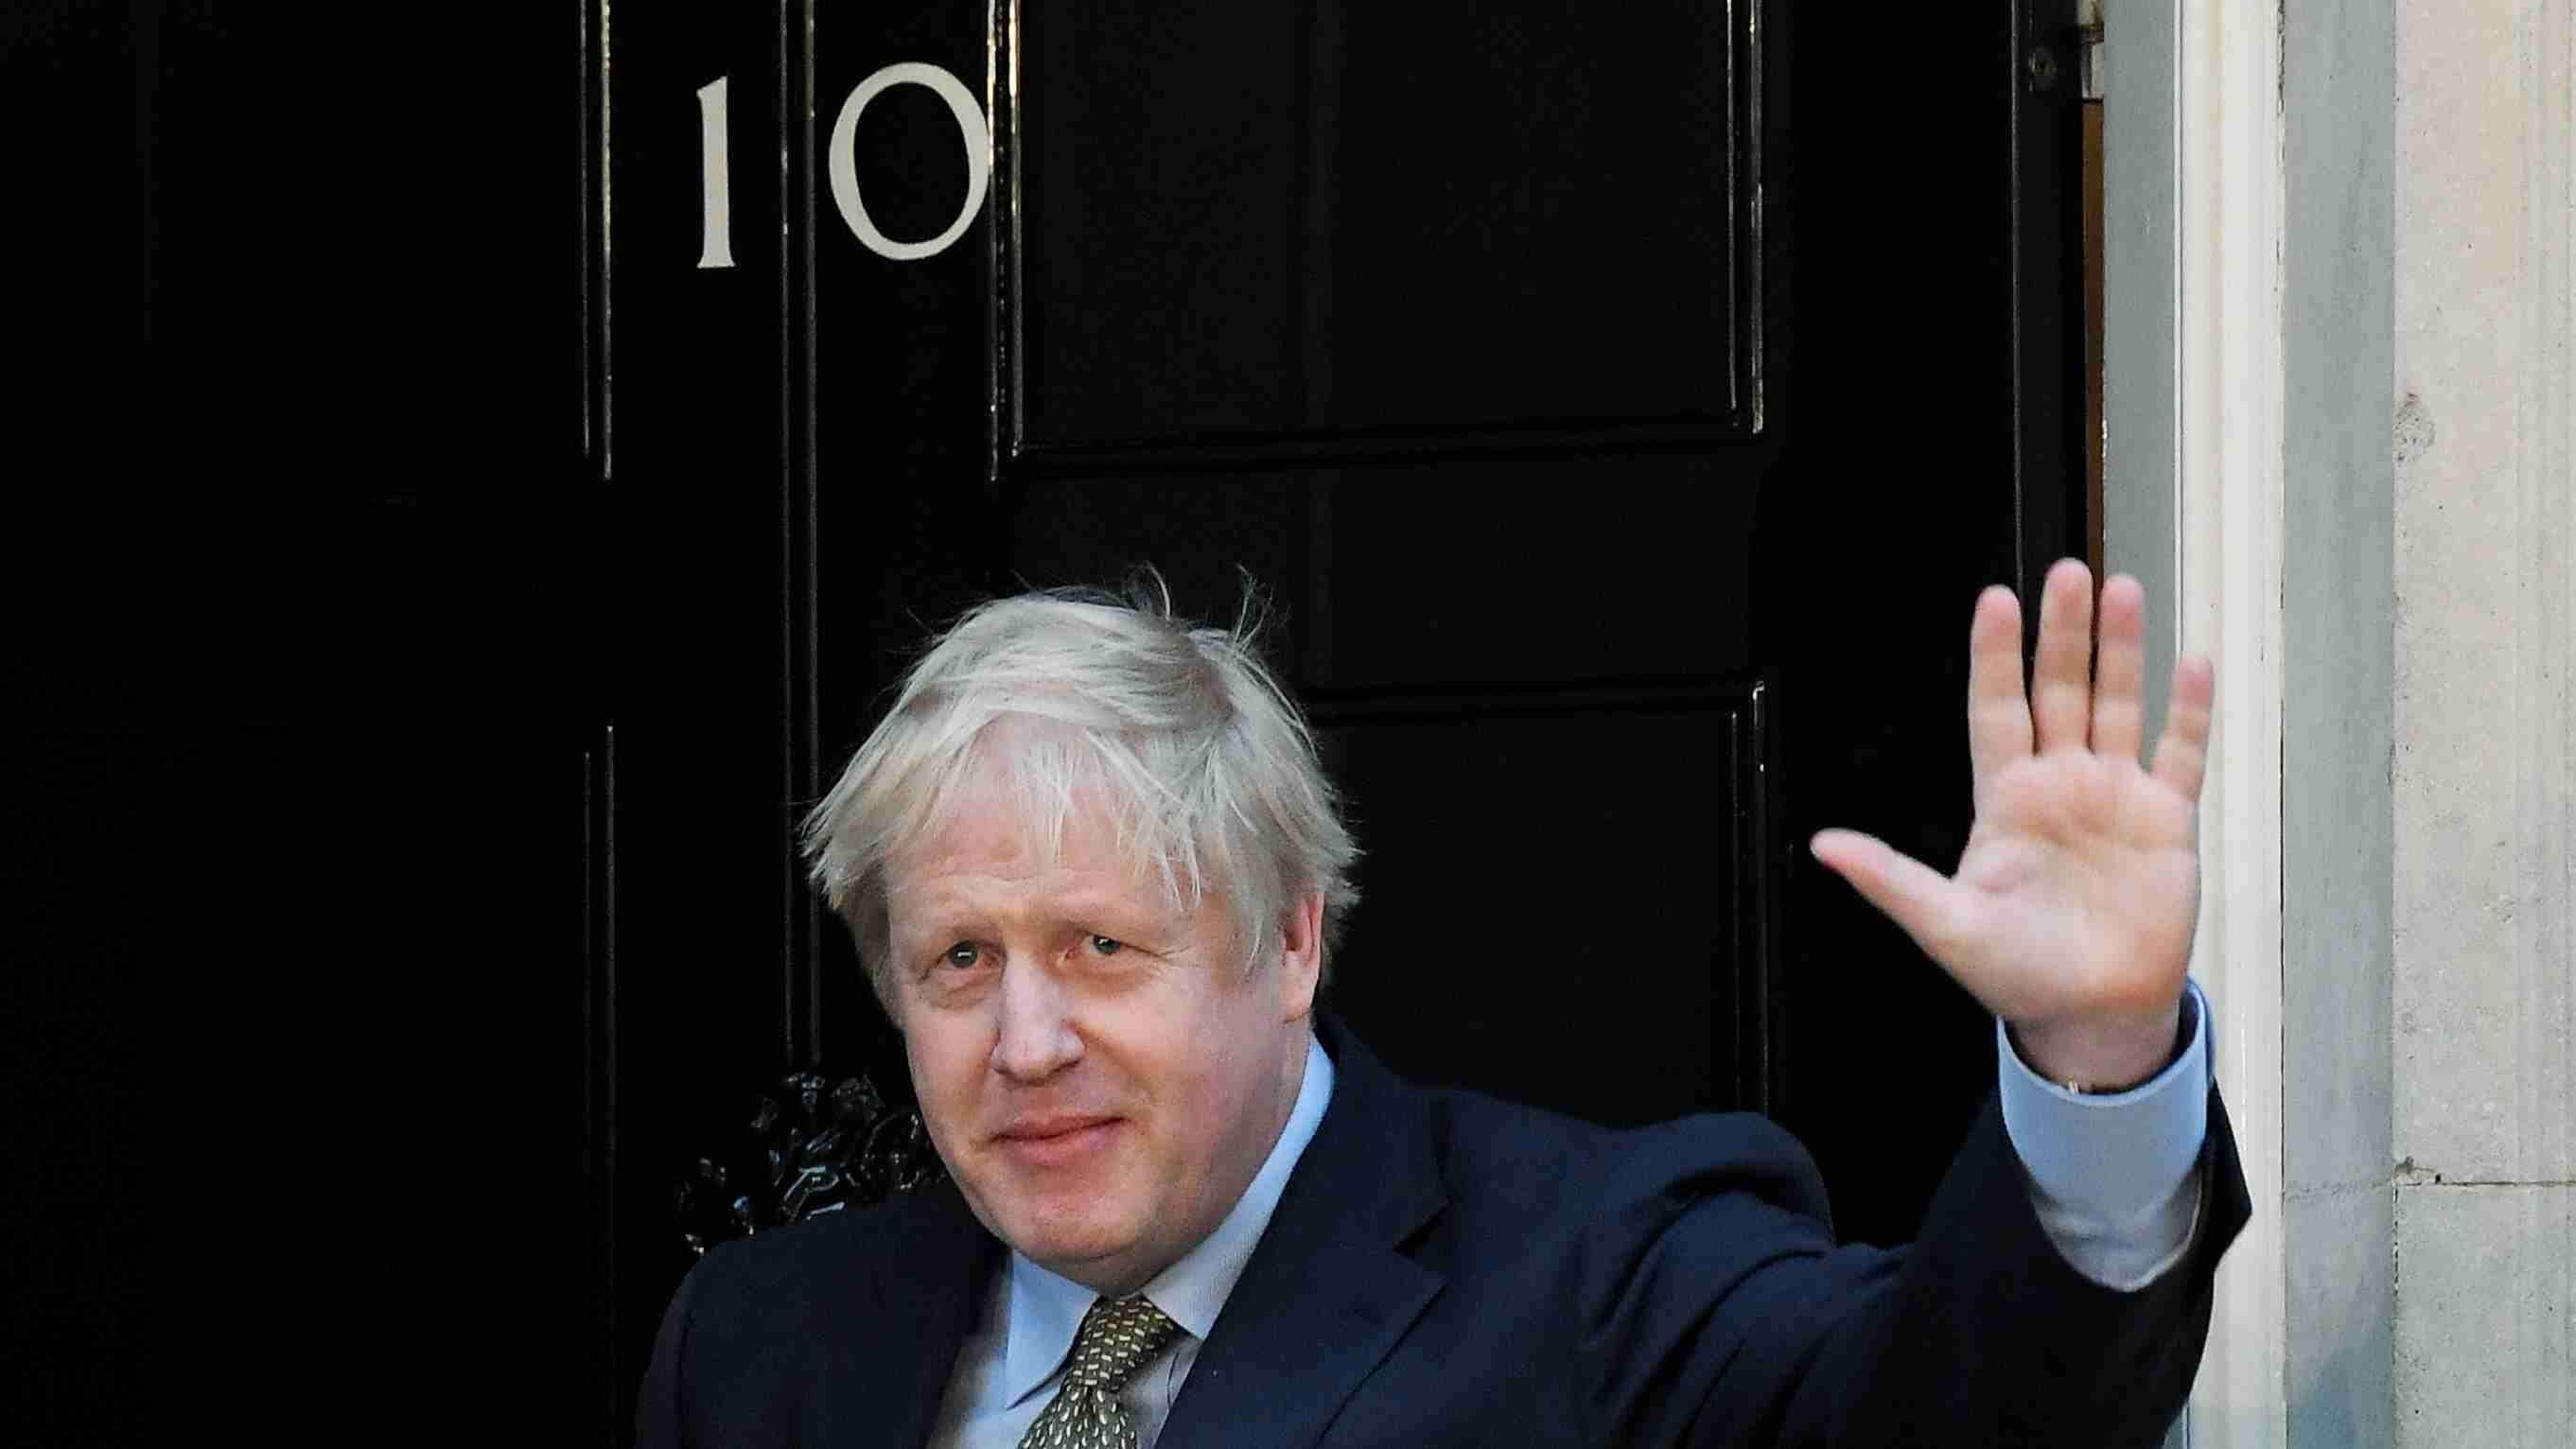 Britain's Prime Minister Boris Johnson waves after delivering a statement at Downing Street following winning the general election, in London, Britain, December 13, 2019. REUTERS/Toby Melville - RC2FUD9K5160